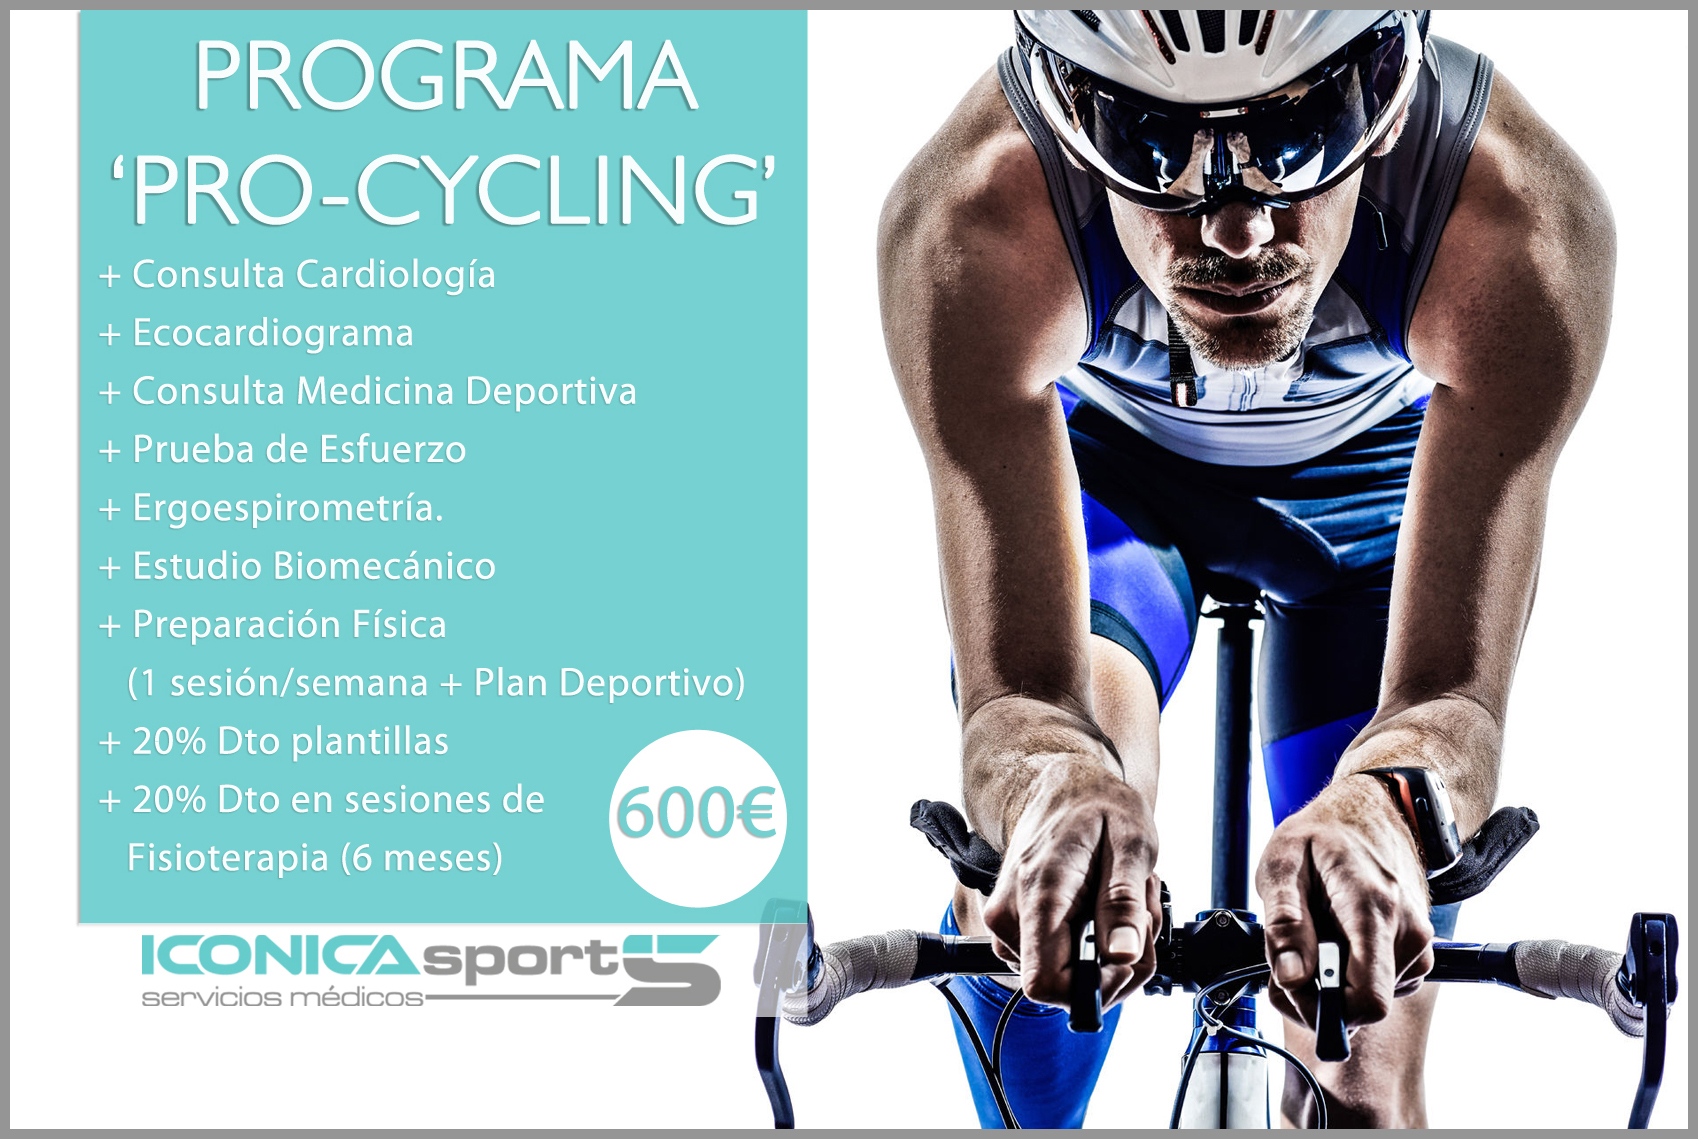 estudio biomecanico | ICONICA SPORTS